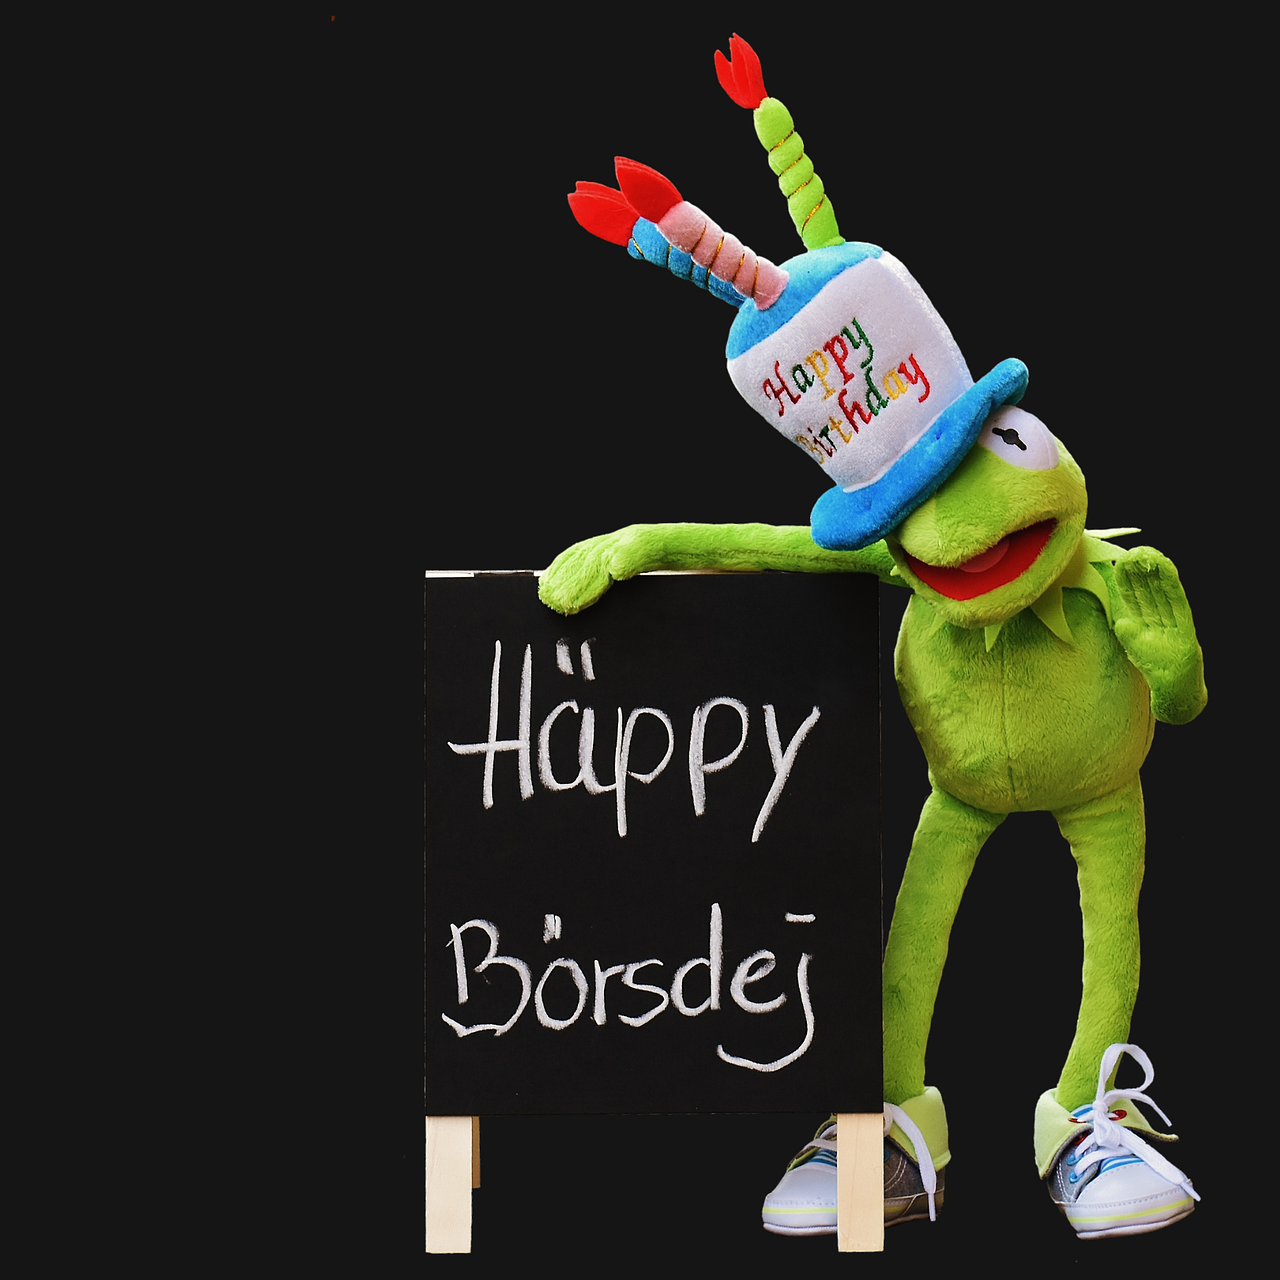 birthday,congratulations,kermit,frog,greeting card,joy,luck,happy,greeting,birthday wishes,happy birthday,birthday card,funny,wish congratulations,free pictures, free photos, free images, royalty free, free illustrations, public domain